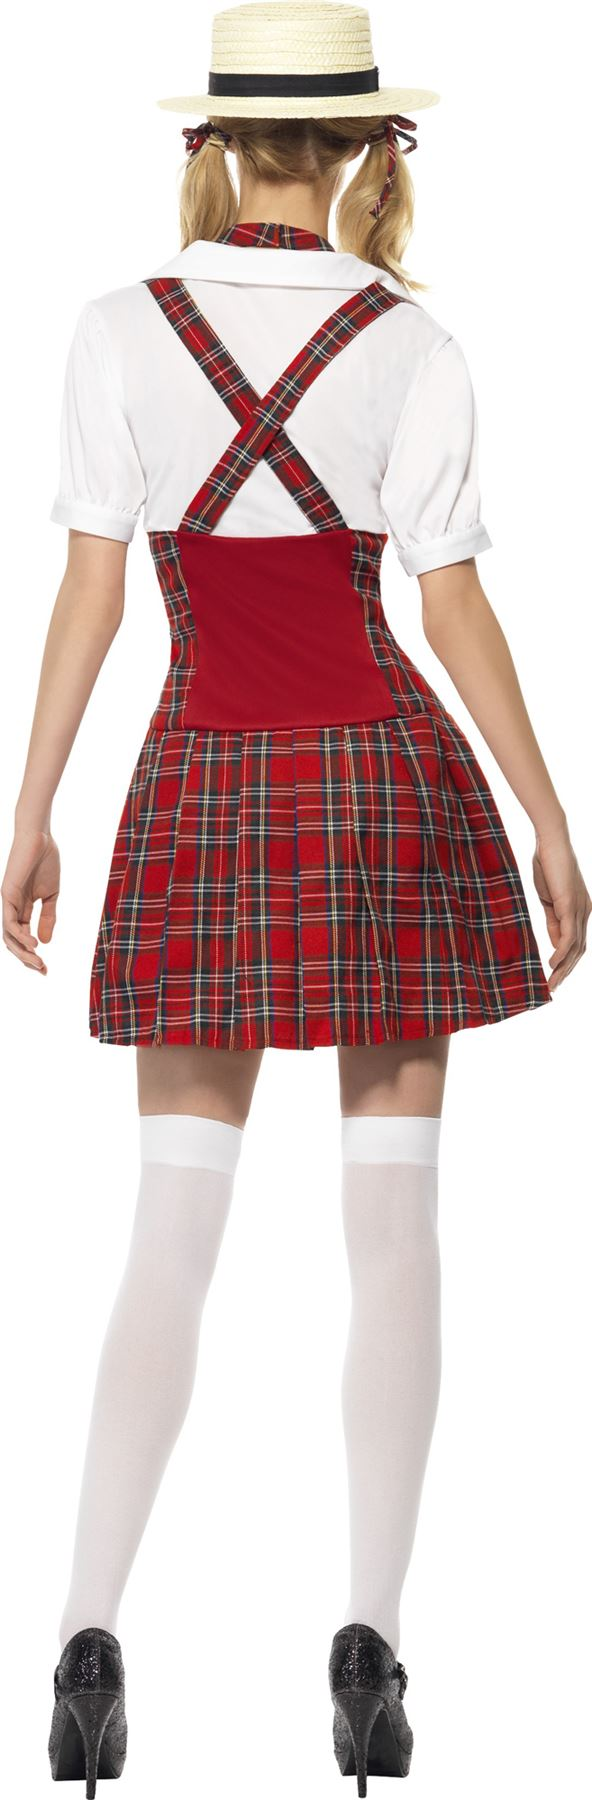 This for school girl costume shoes hot!!!!!